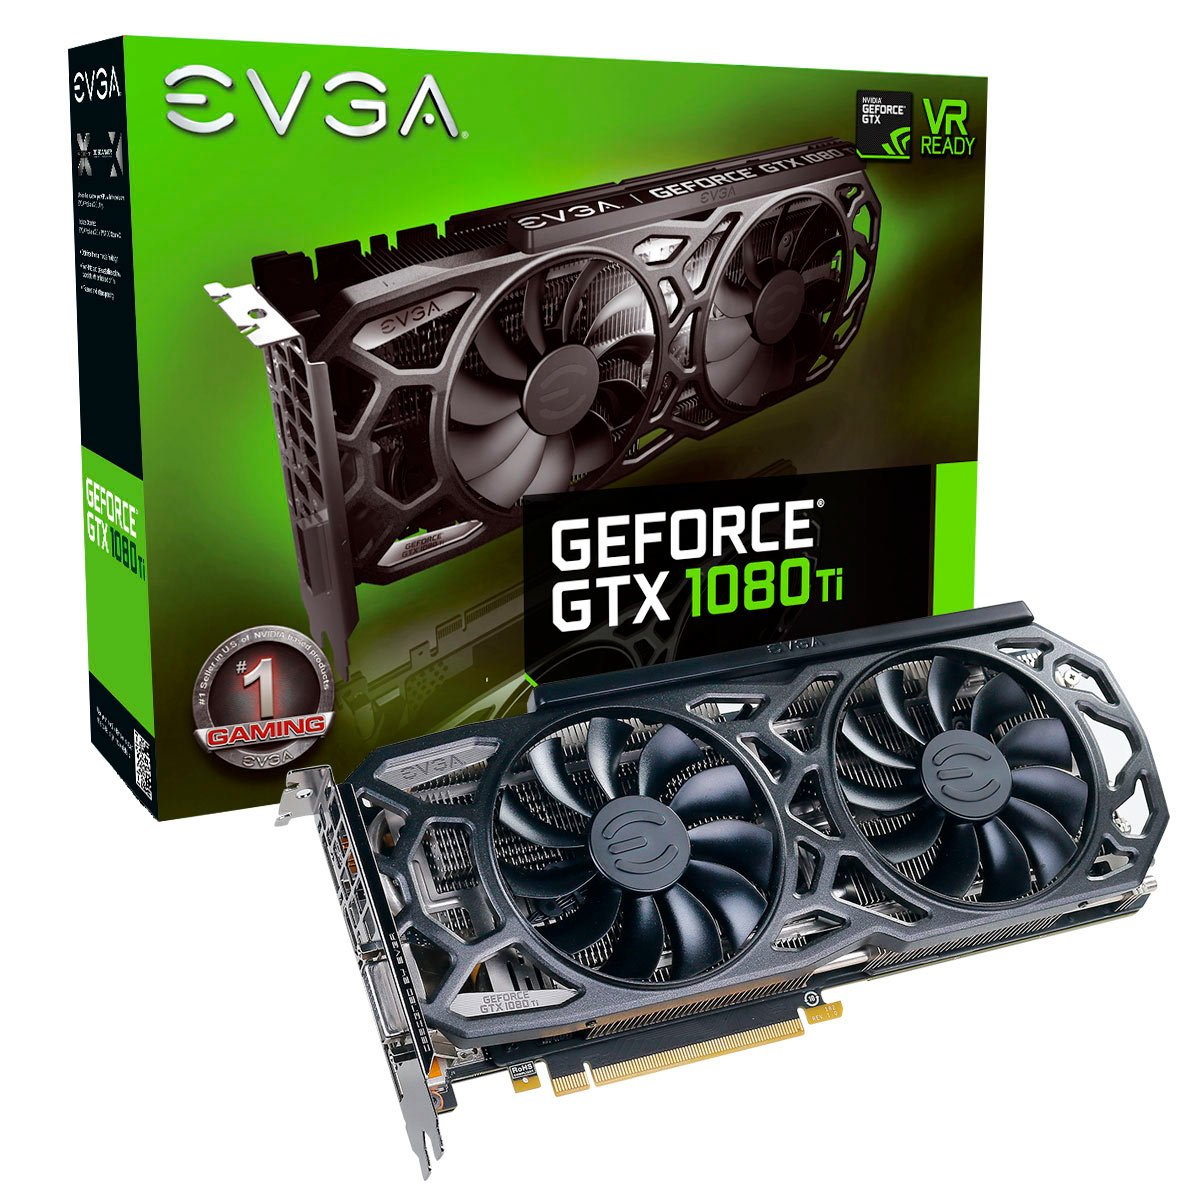 EVGA HL-007304 NVIDIA GeForce GTX 1080 Ti Black Edition 11GB iCX Cooler and LED Graphics Card by EVGA